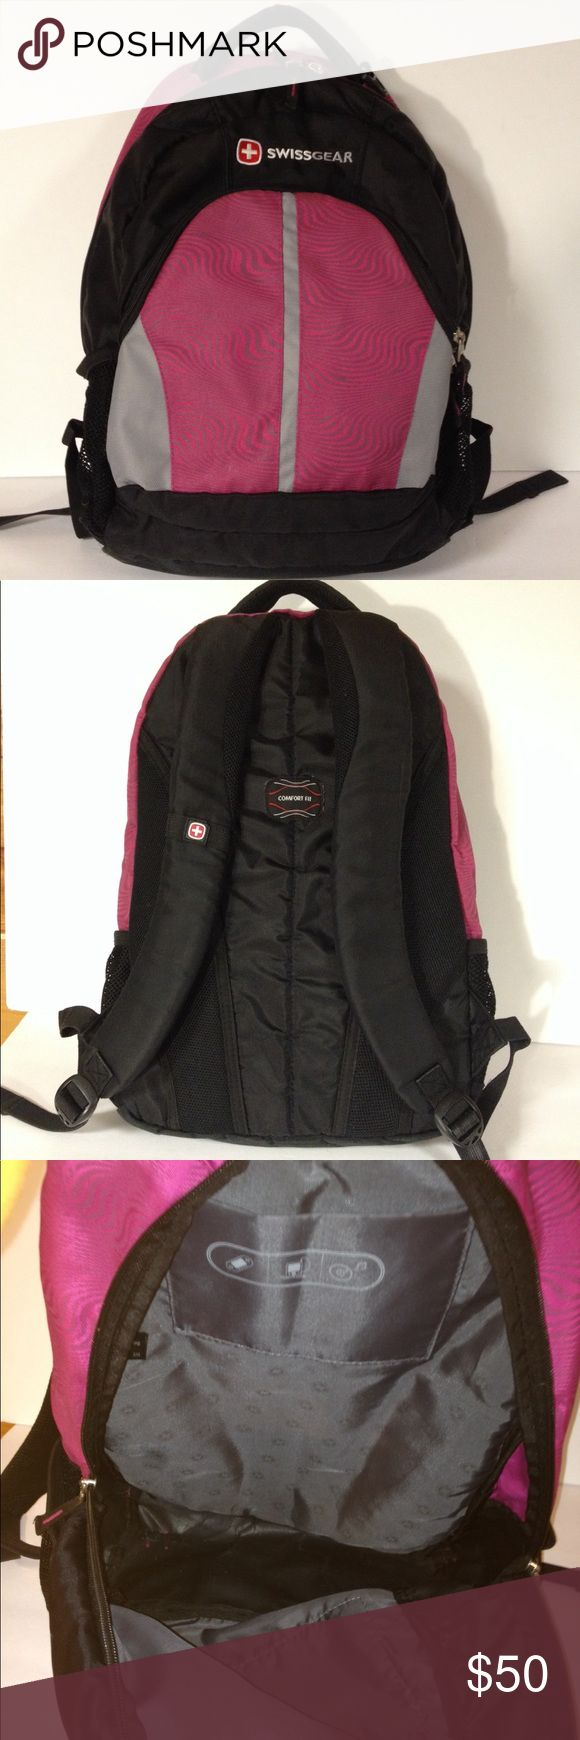 "Swissgear black pink backpack Good clean condition.  Smoke free.  No rips or stains. Normal use bag.  Please see pics. Bag is about 15"" wide and 17"" tall SwissGear Bags Backpacks"